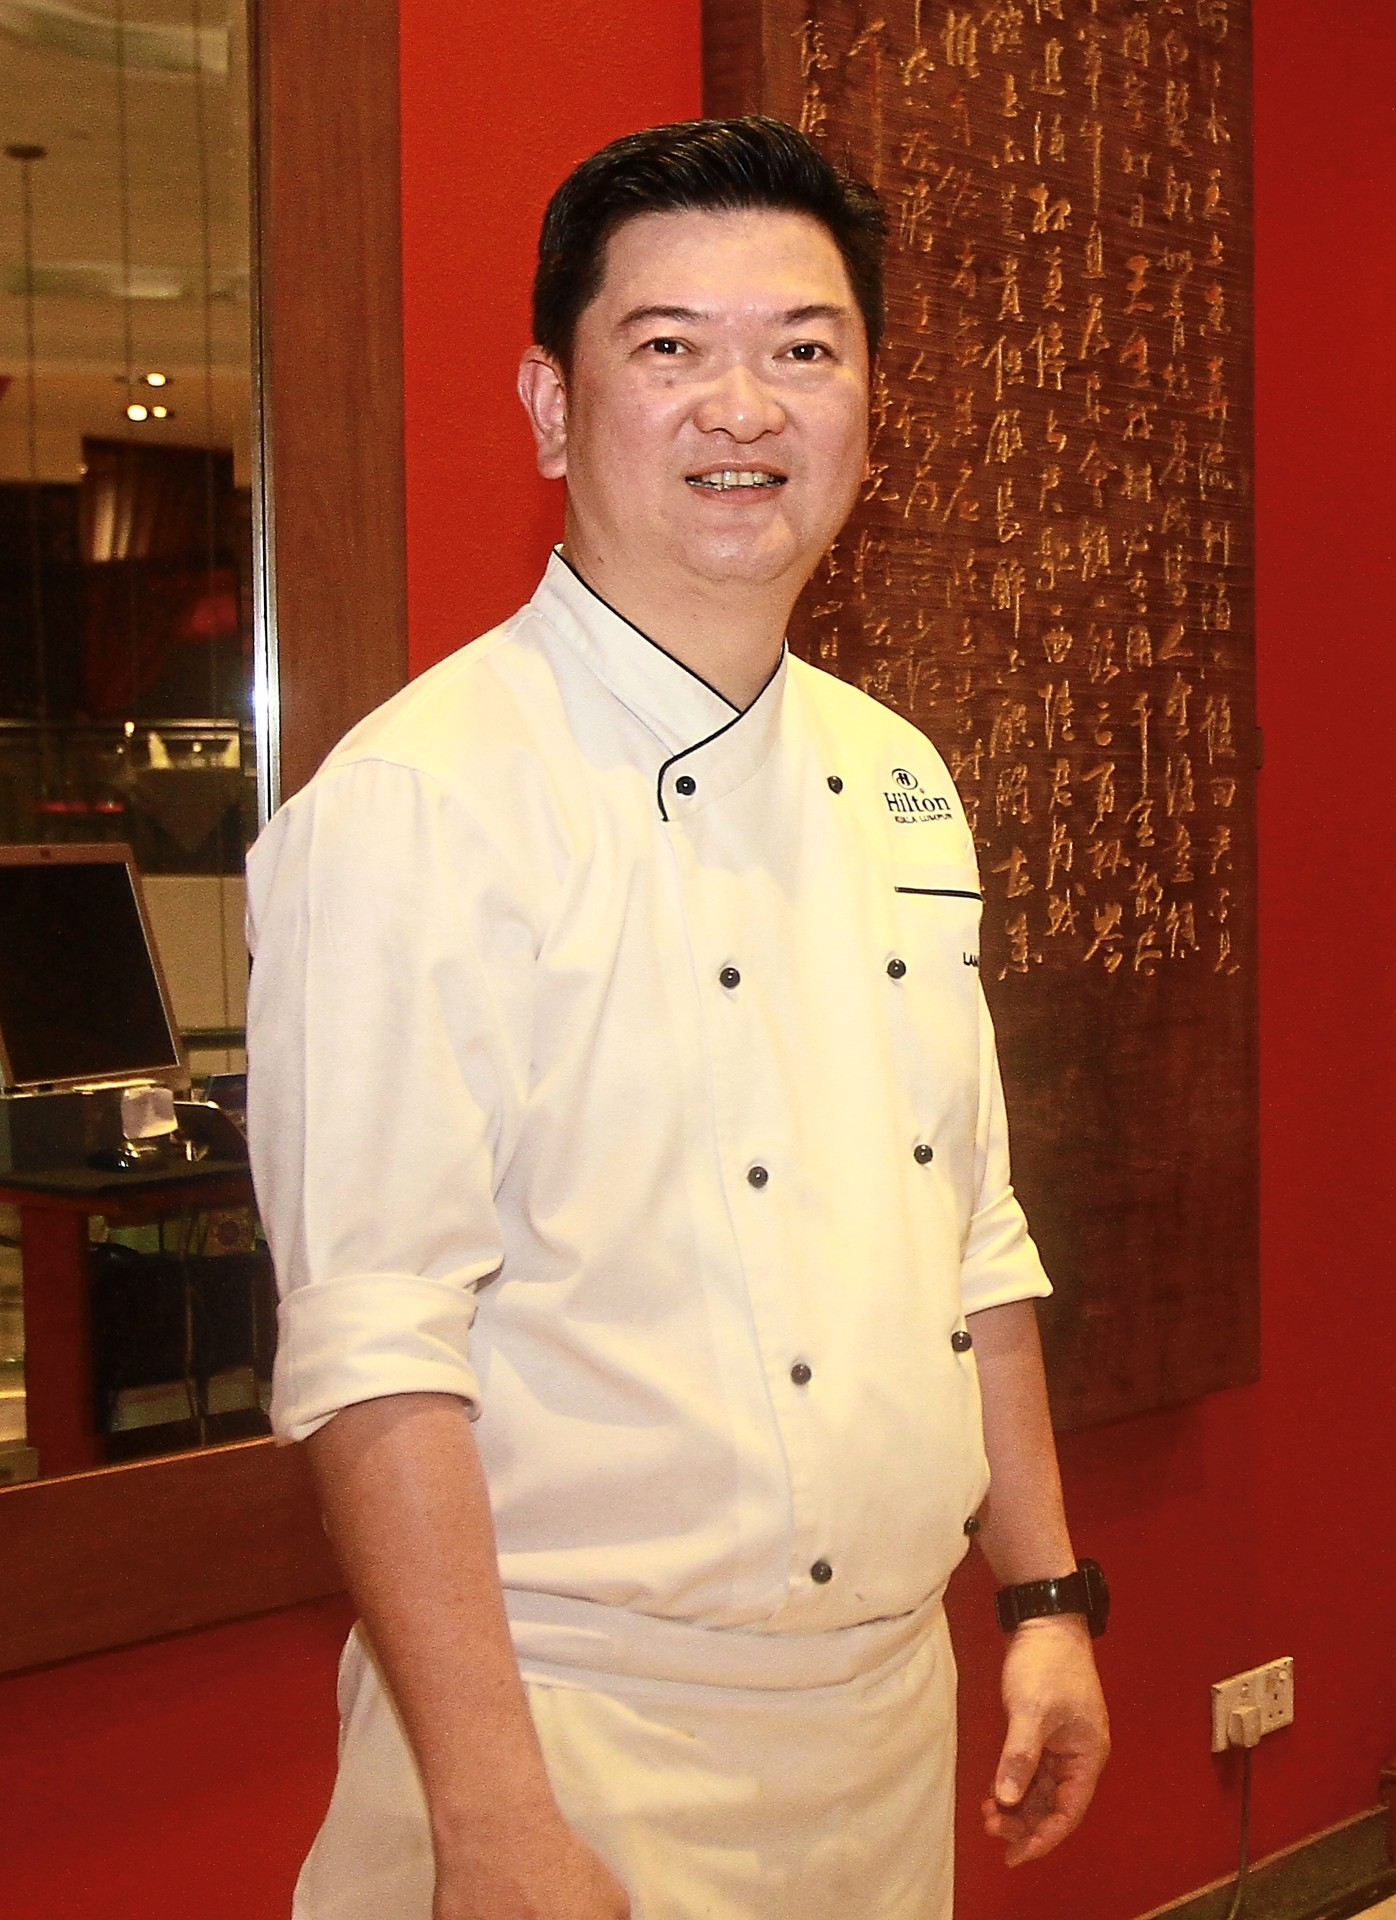 Lam says the restaurant can prepare the crab in many styles to suit the customers' palate.